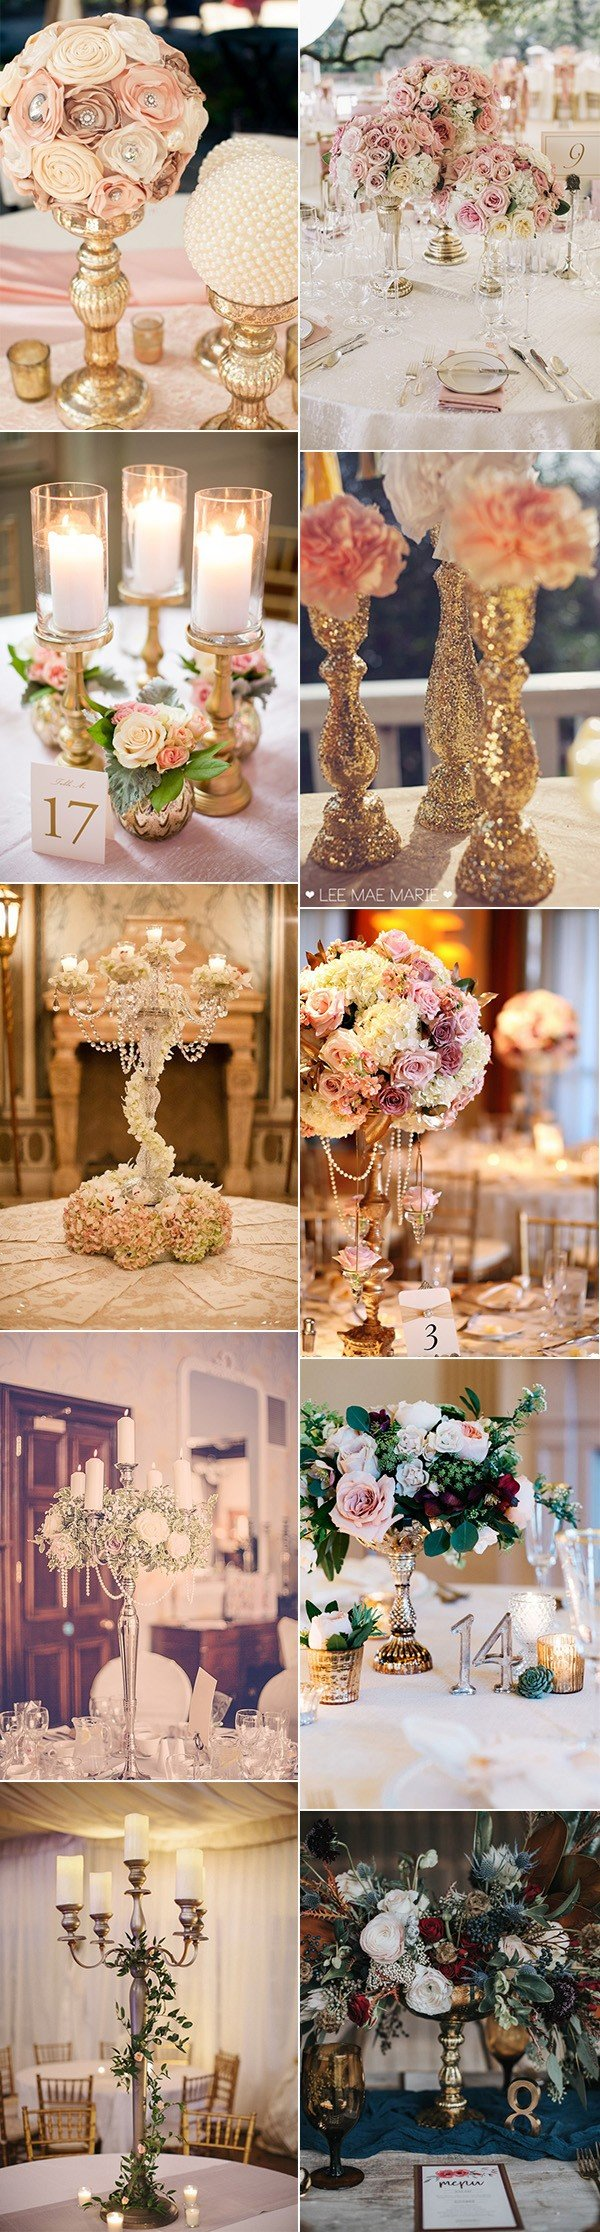 chic vintage wedding centerpieces with candlesticks